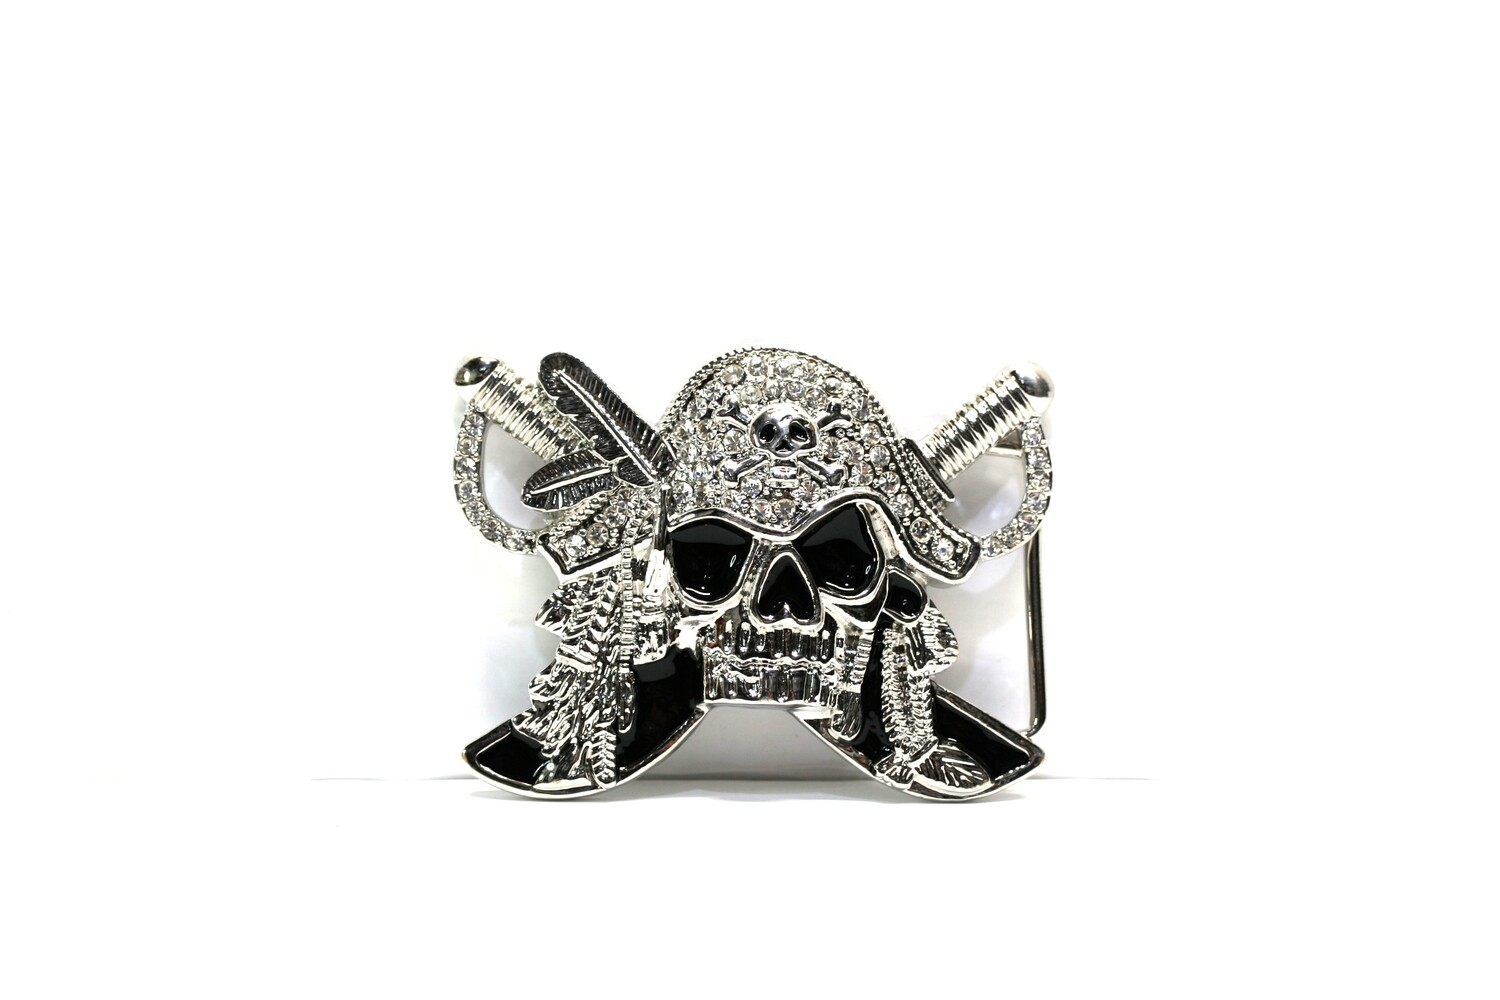 Arrrh Billy Pirate Skull Belt Buckle Bejewelled